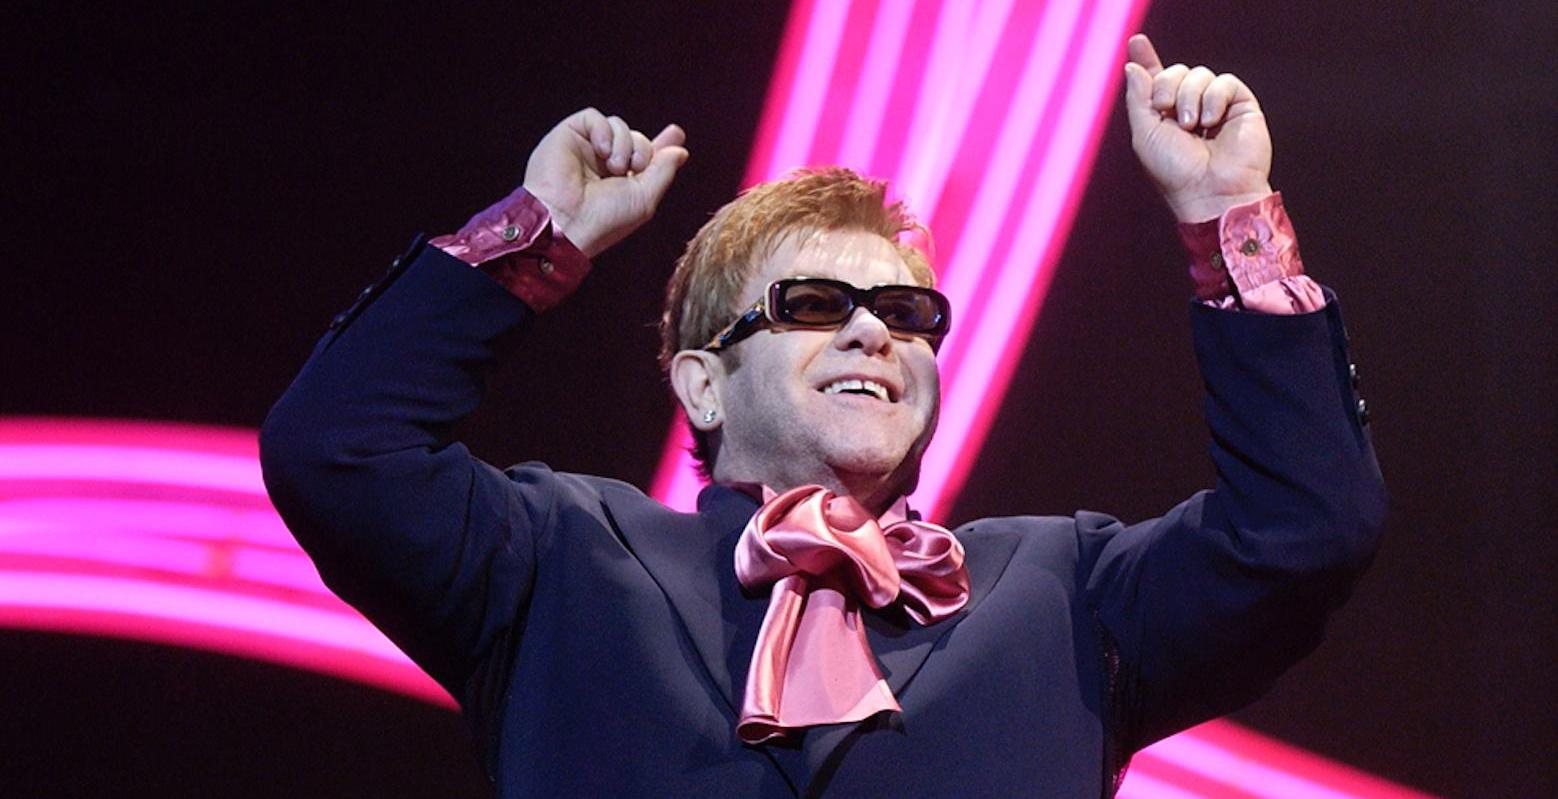 Elton John farewell Montreal concert 2018 at the Bell Centre